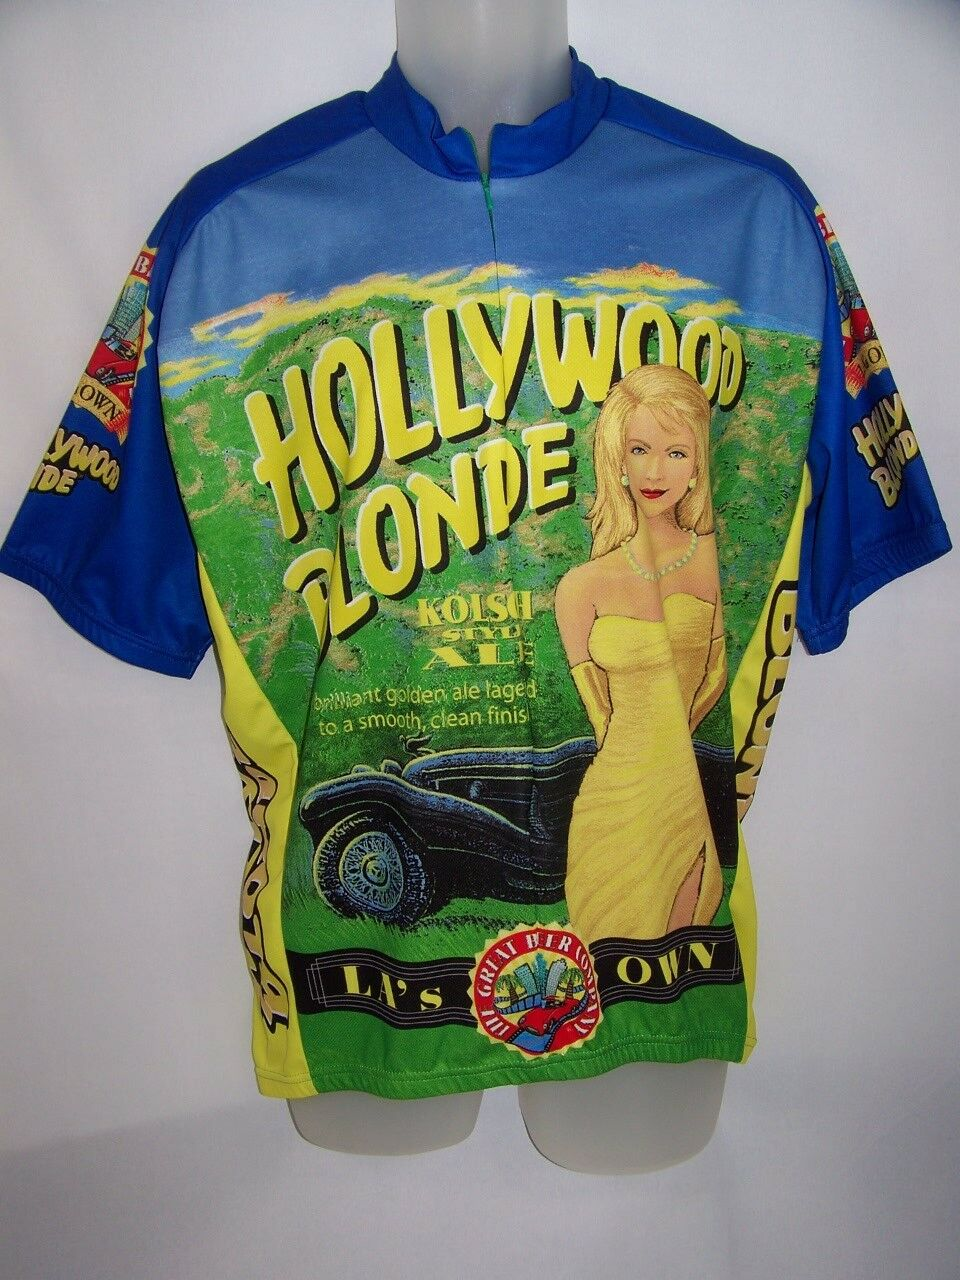 Hollywood Blonde Ale Cycling  Jersey Polyester Shirt Beer World Jerseys Mens XXL  is discounted